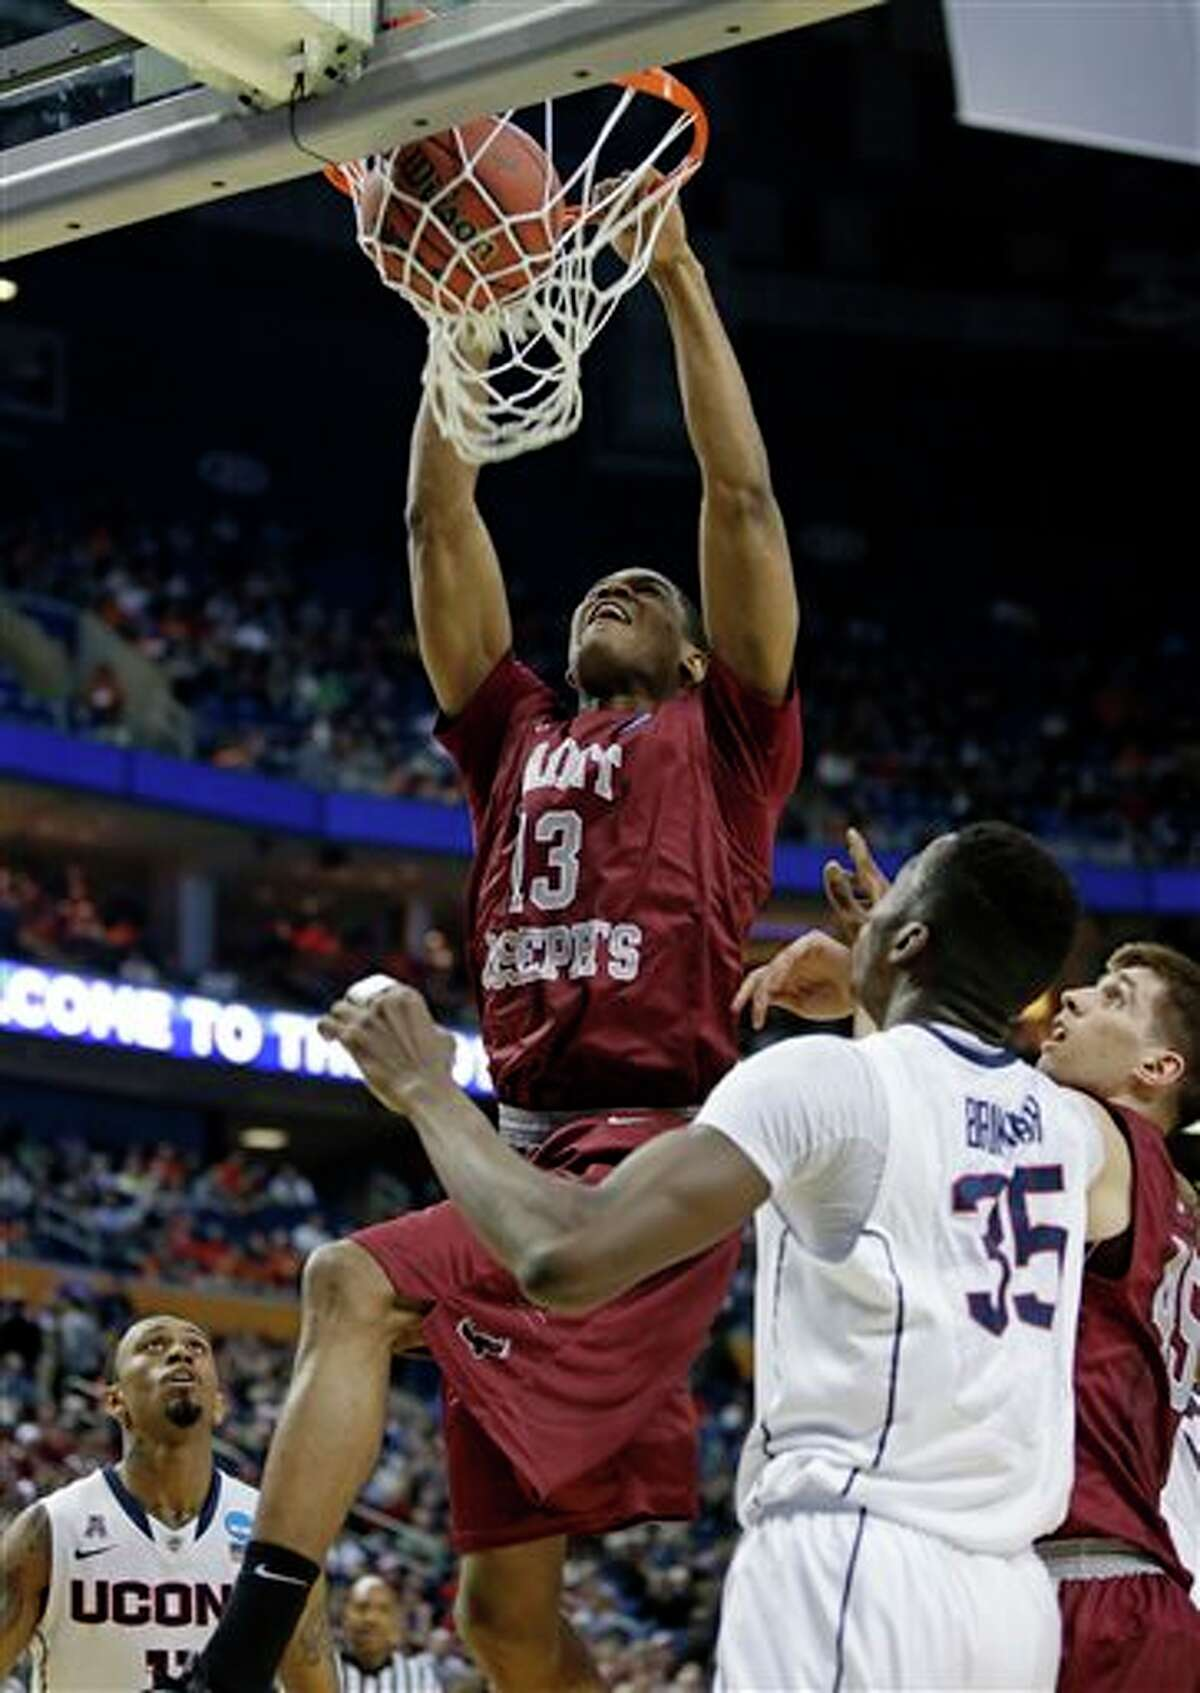 Saint Joseph's Ronald Roberts, Jr. (13) dunks the ball in front of Connecticut's Amida Brimah (35) during the first half of a second-round game in the NCAA college basketball tournament in Buffalo, N.Y., Thursday, March 20, 2014. (AP Photo/Nick LoVerde)